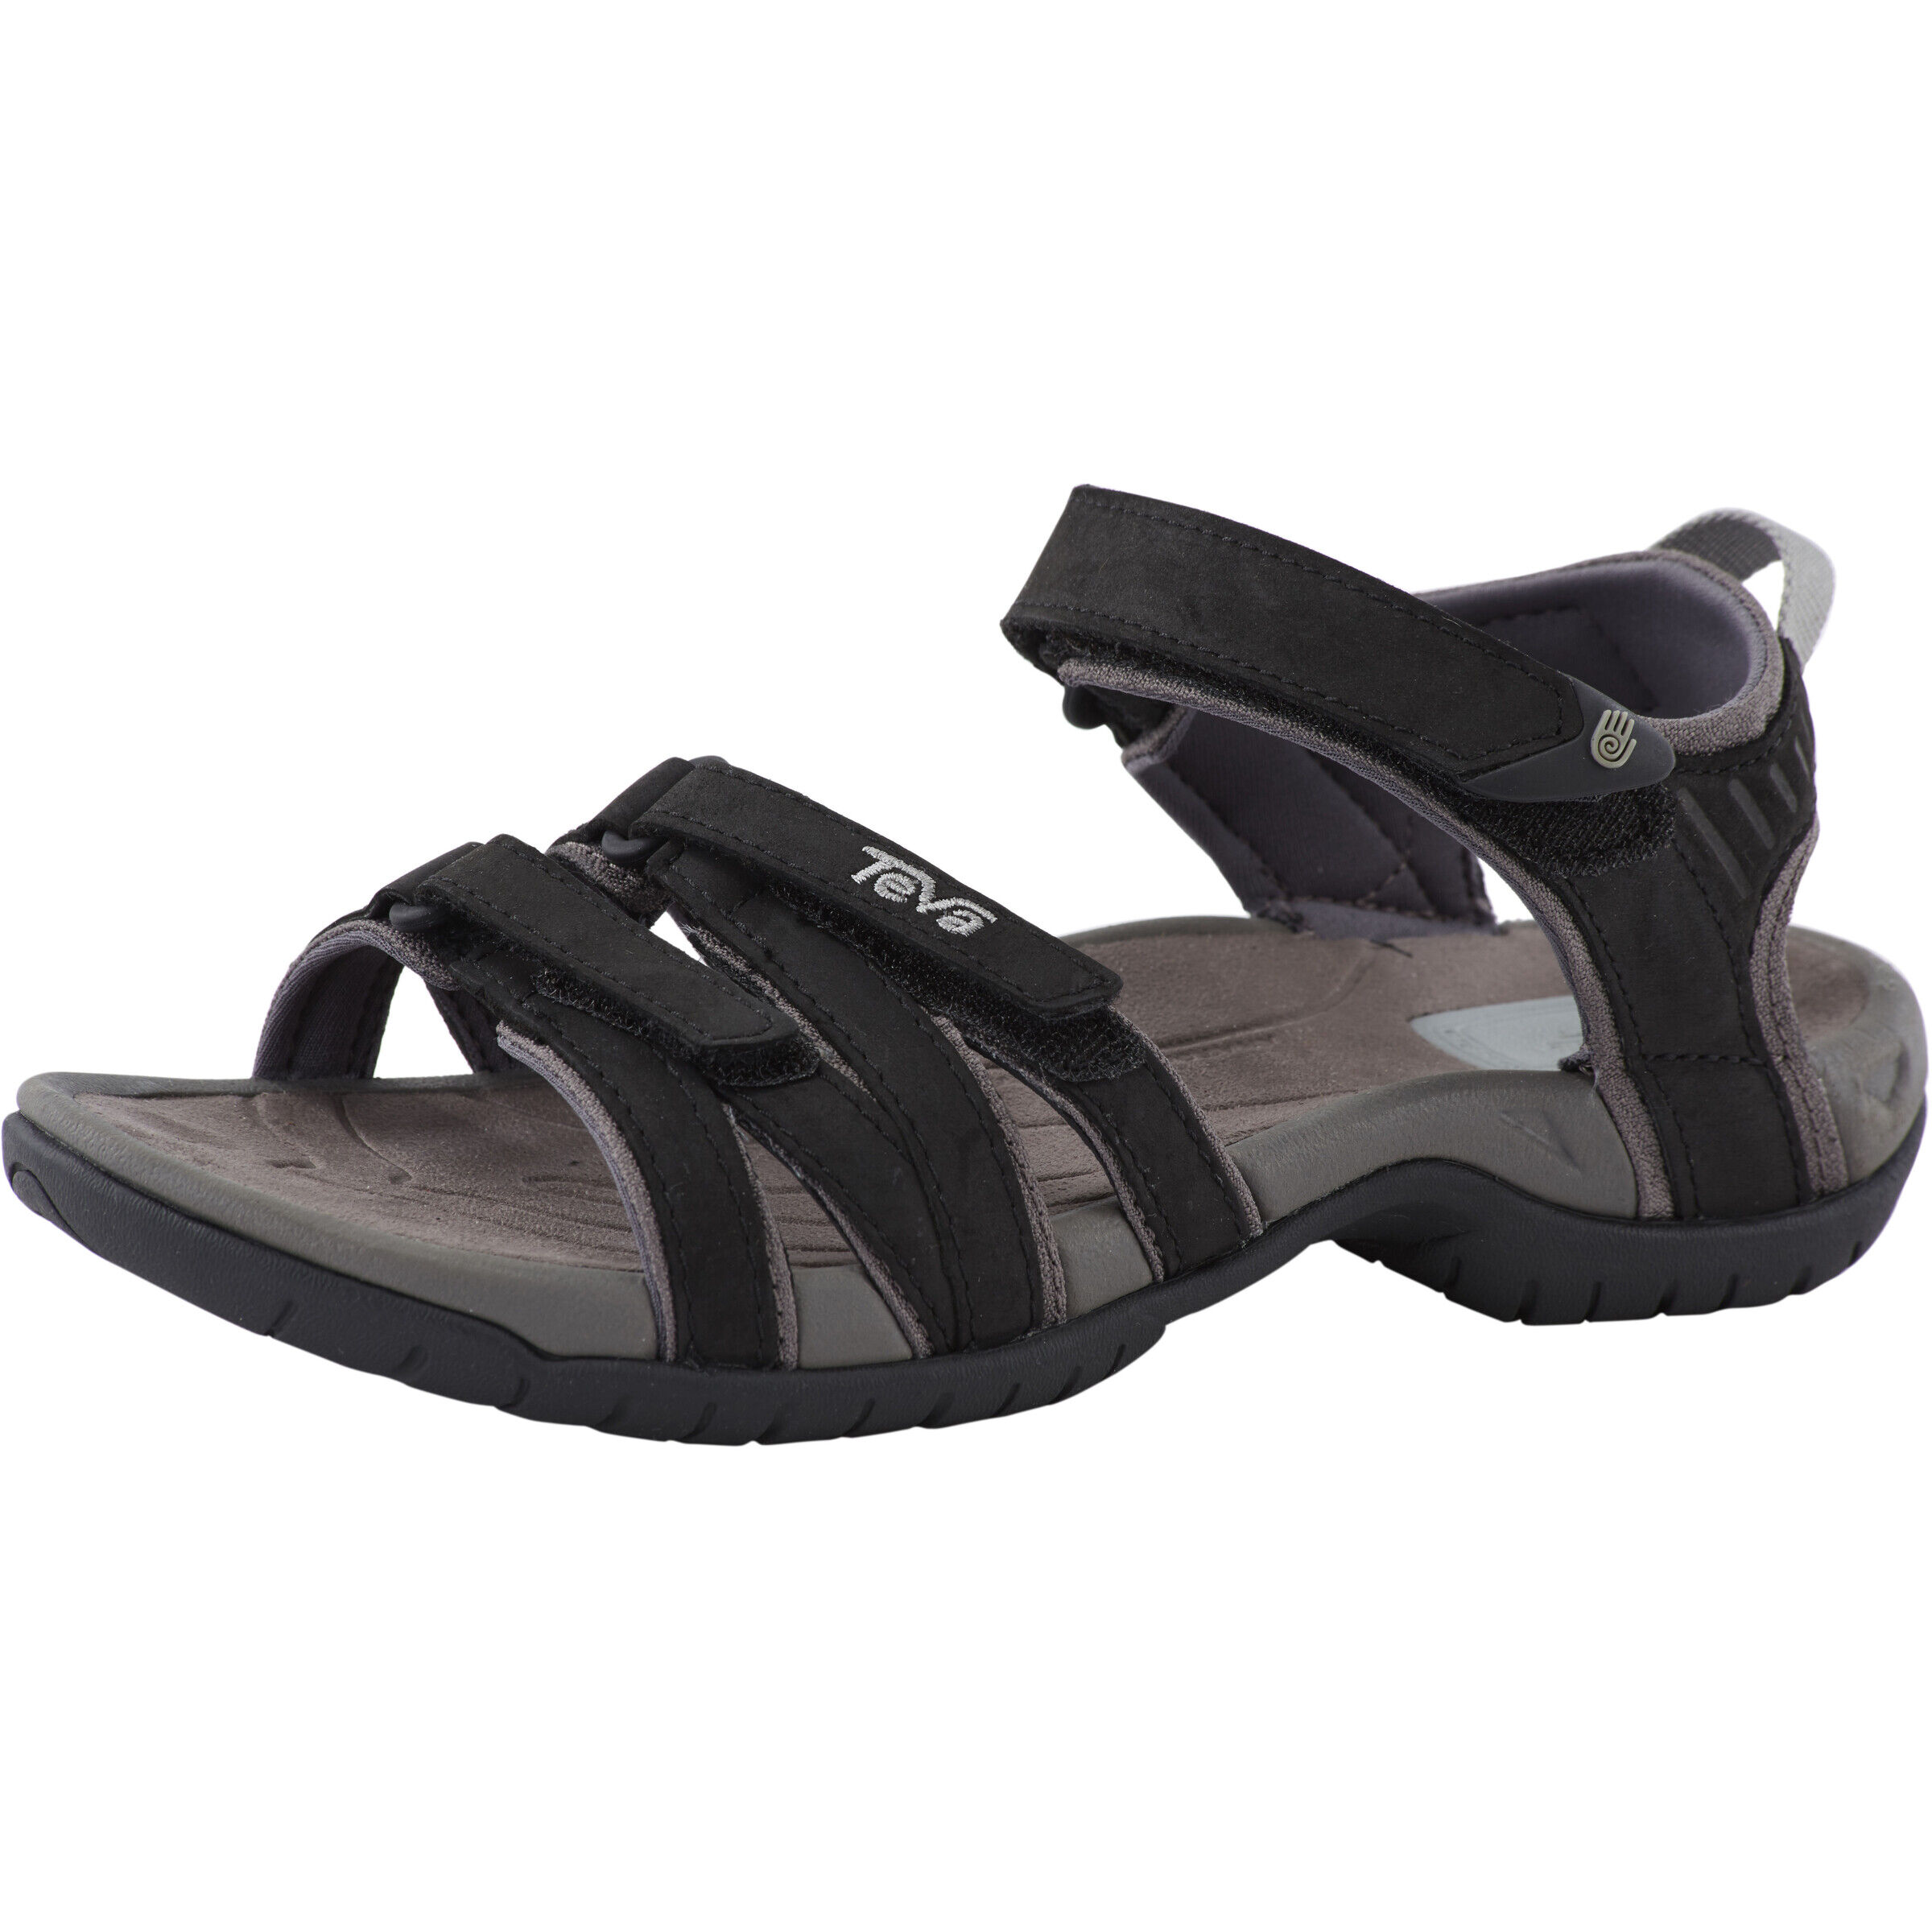 Teva Tirra Leather Sandals Dam black